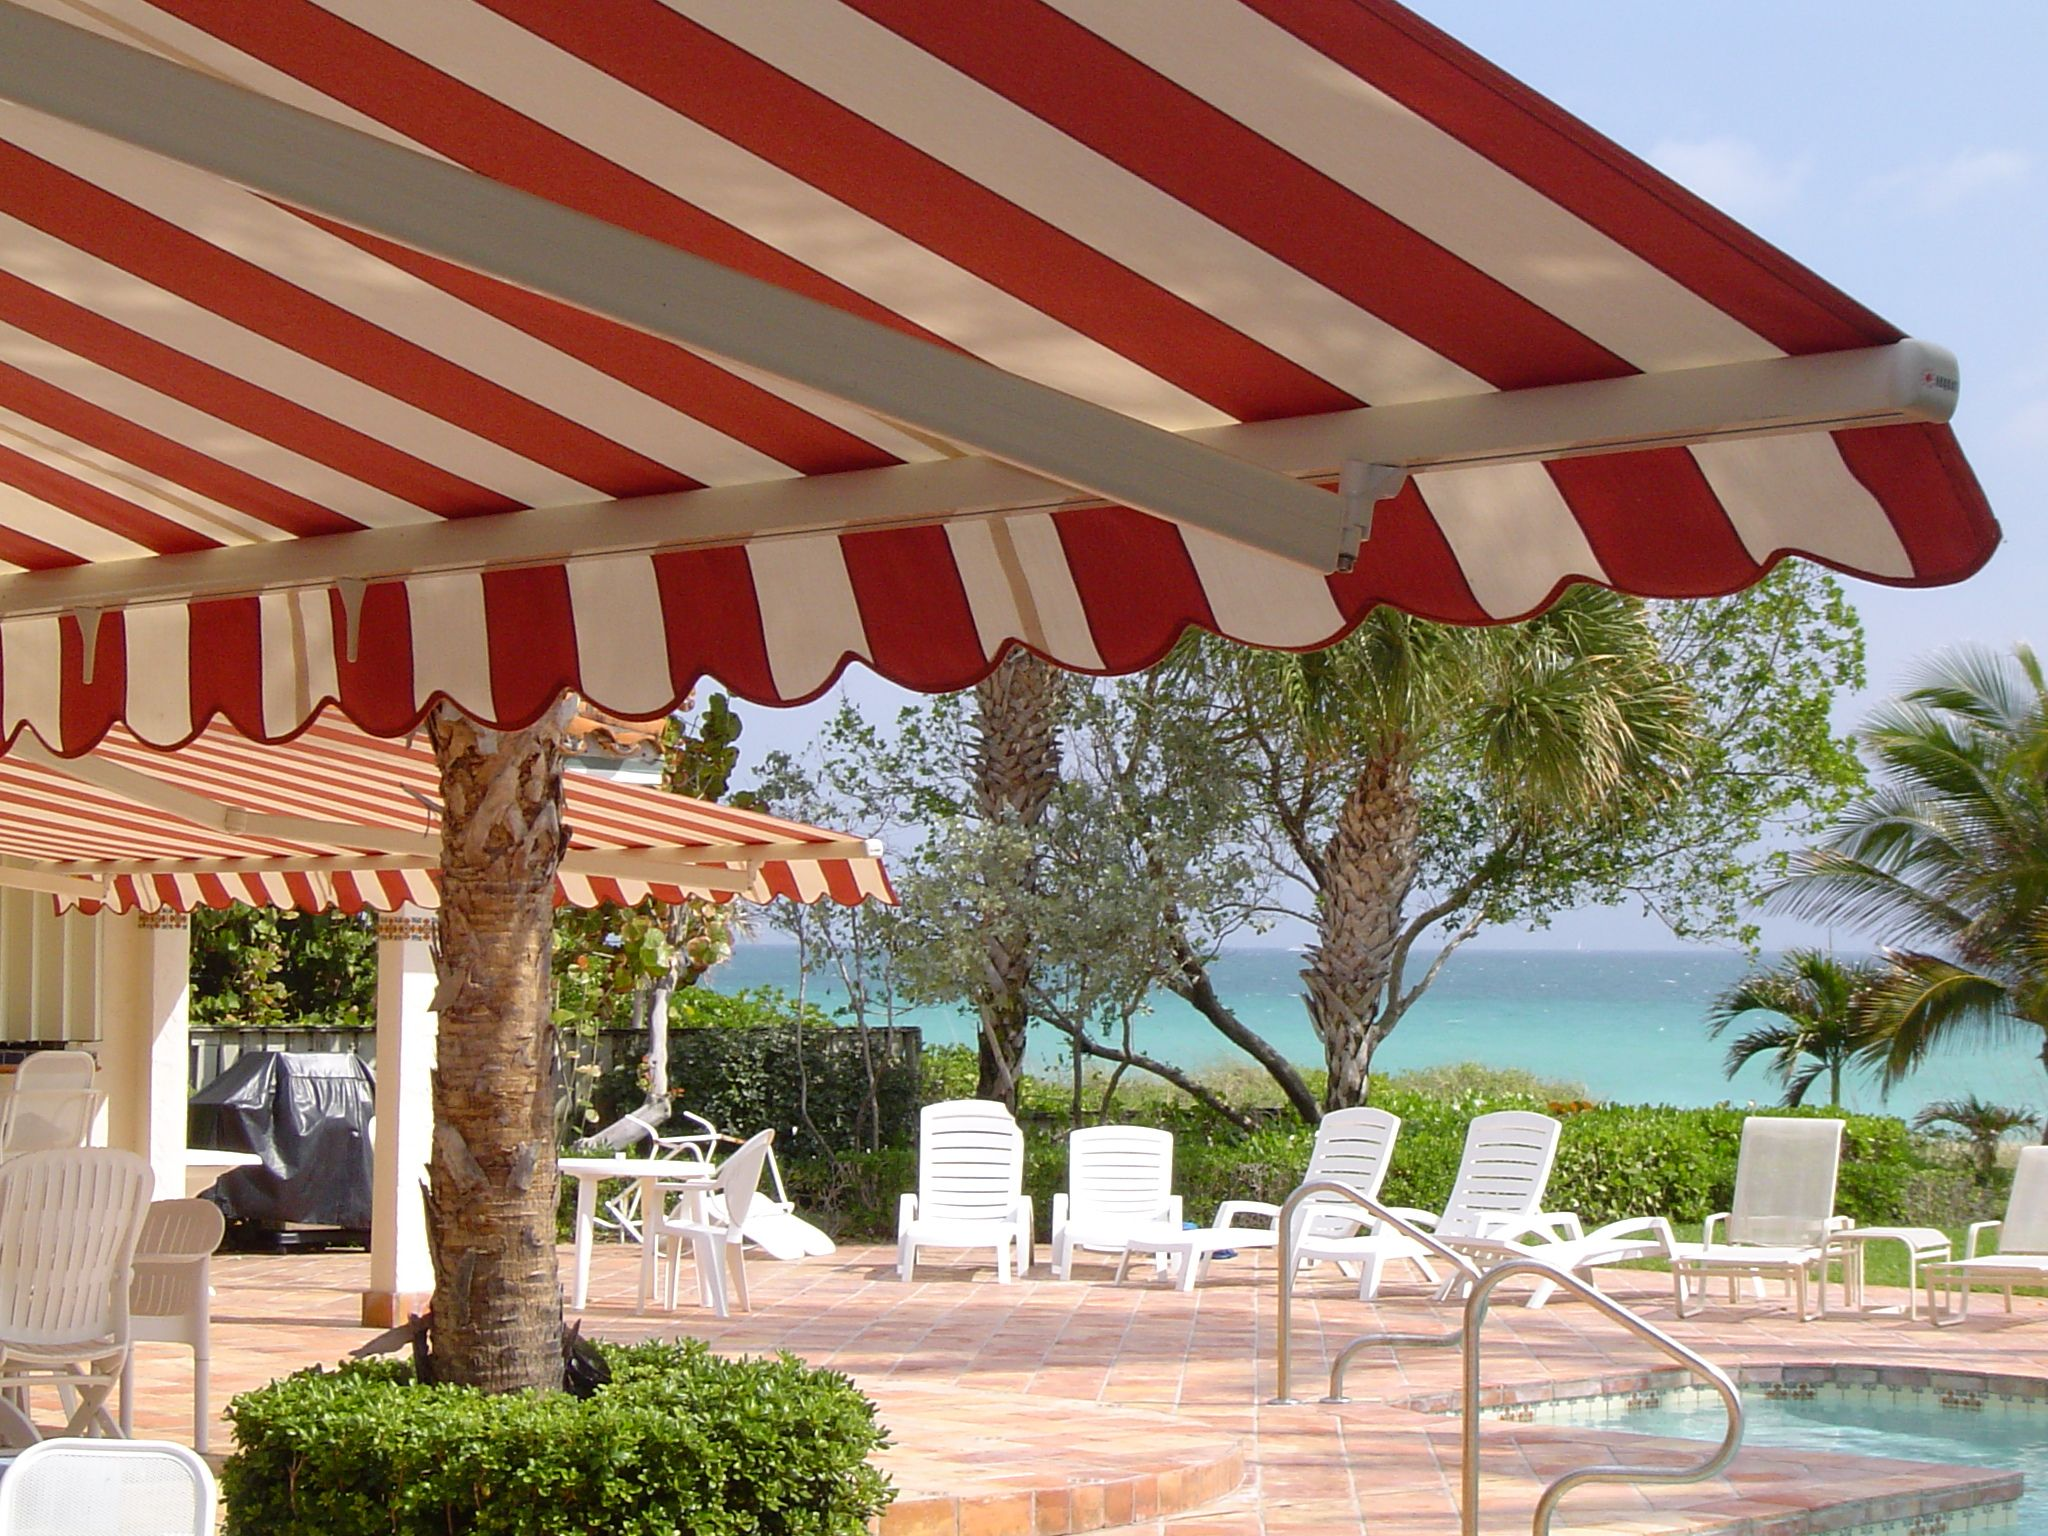 Several High Quality Retractable Lateral Folding Arm Awnings Installed On A Home In Famous Golden Beach Florida Usa Deck With Pergola Covered Pergola Awning